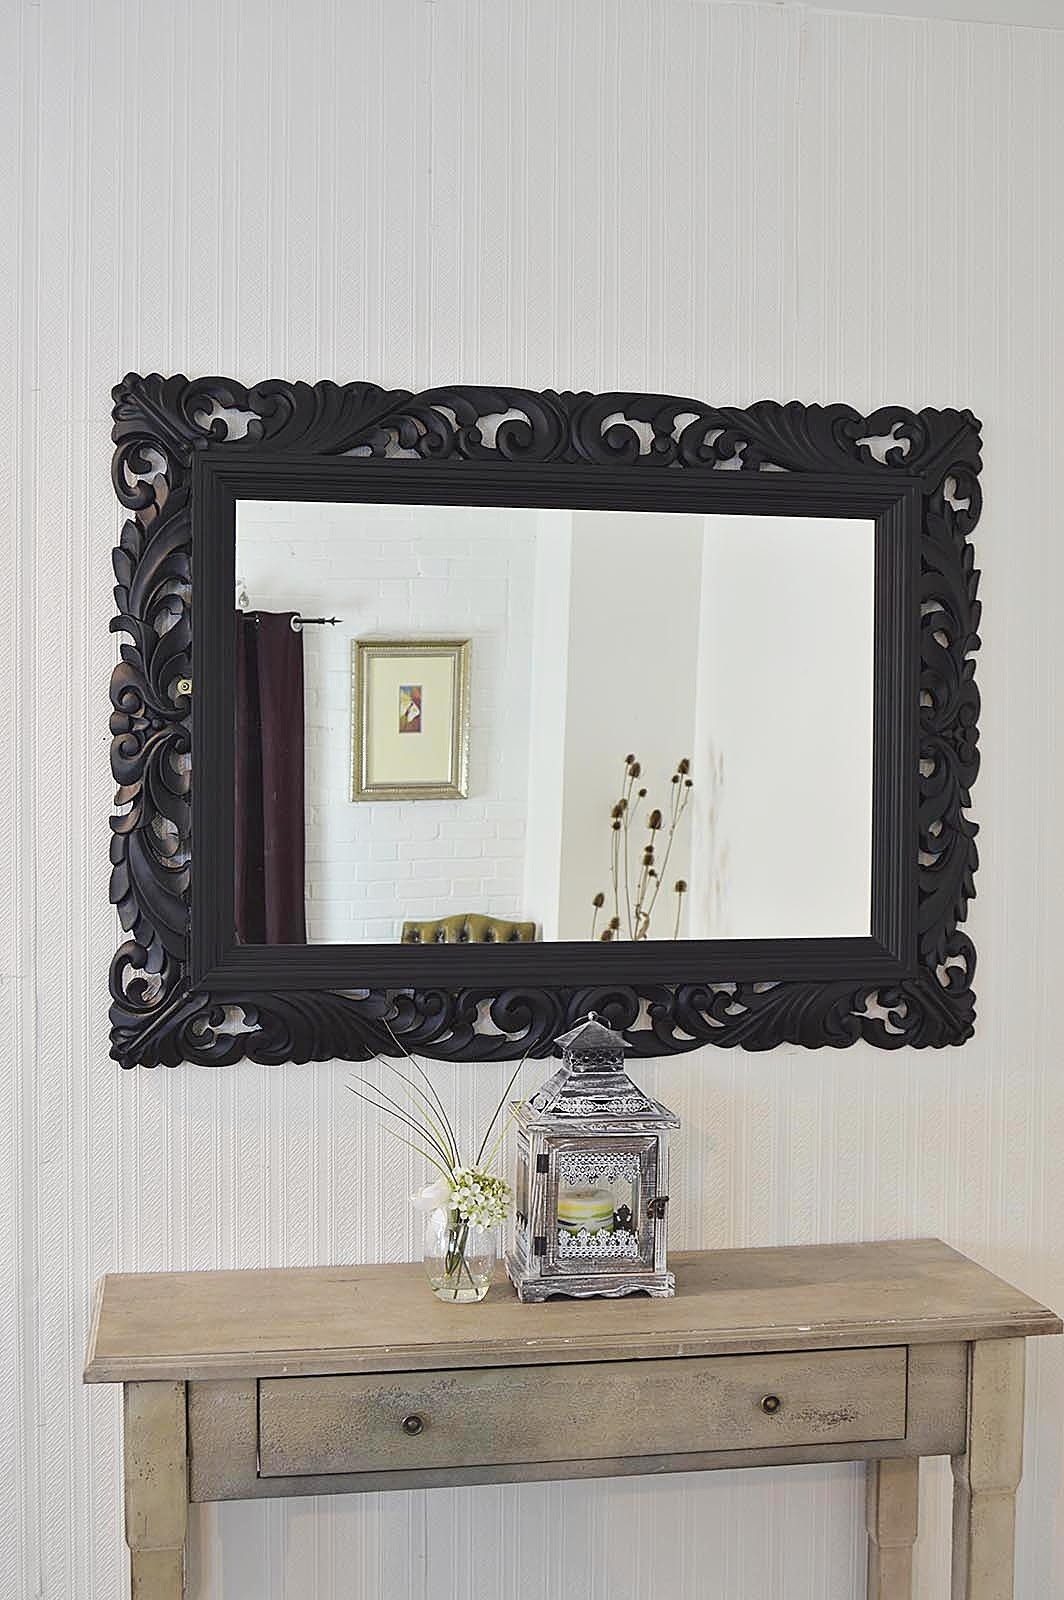 Large Black Framed Wall Mirrors Large Black Framed Wall Mirrors large black framed wall mirror harpsoundsco 1064 X 1600